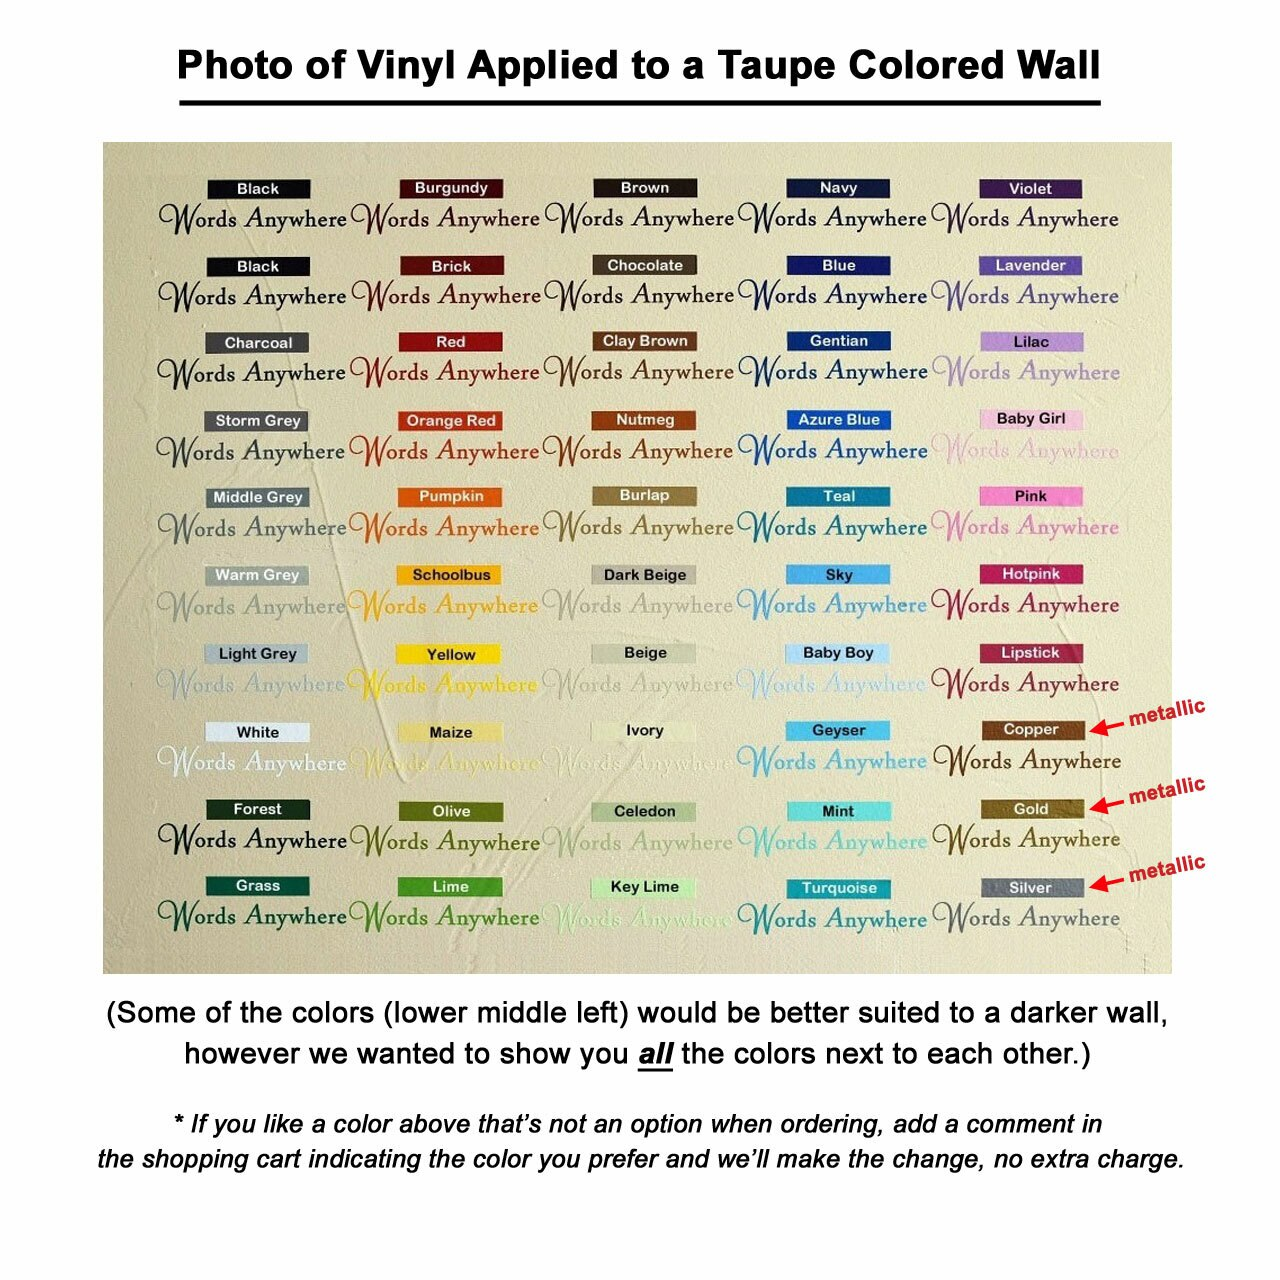 Photo of all vinyl colors applied to a taupe colored wall